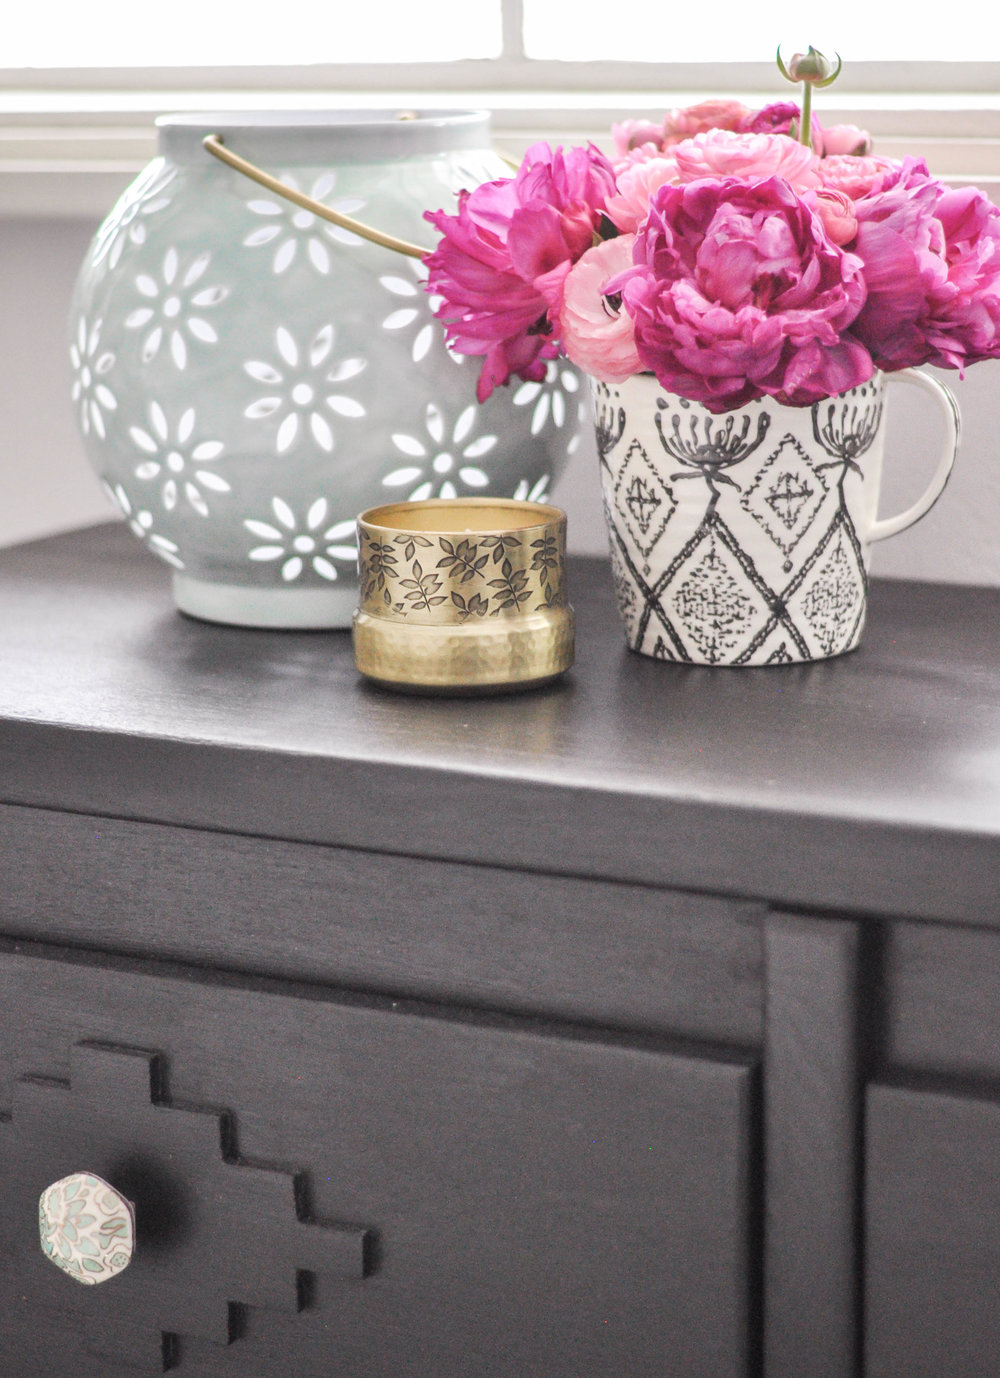 styled dark wood dresser with pink flowers